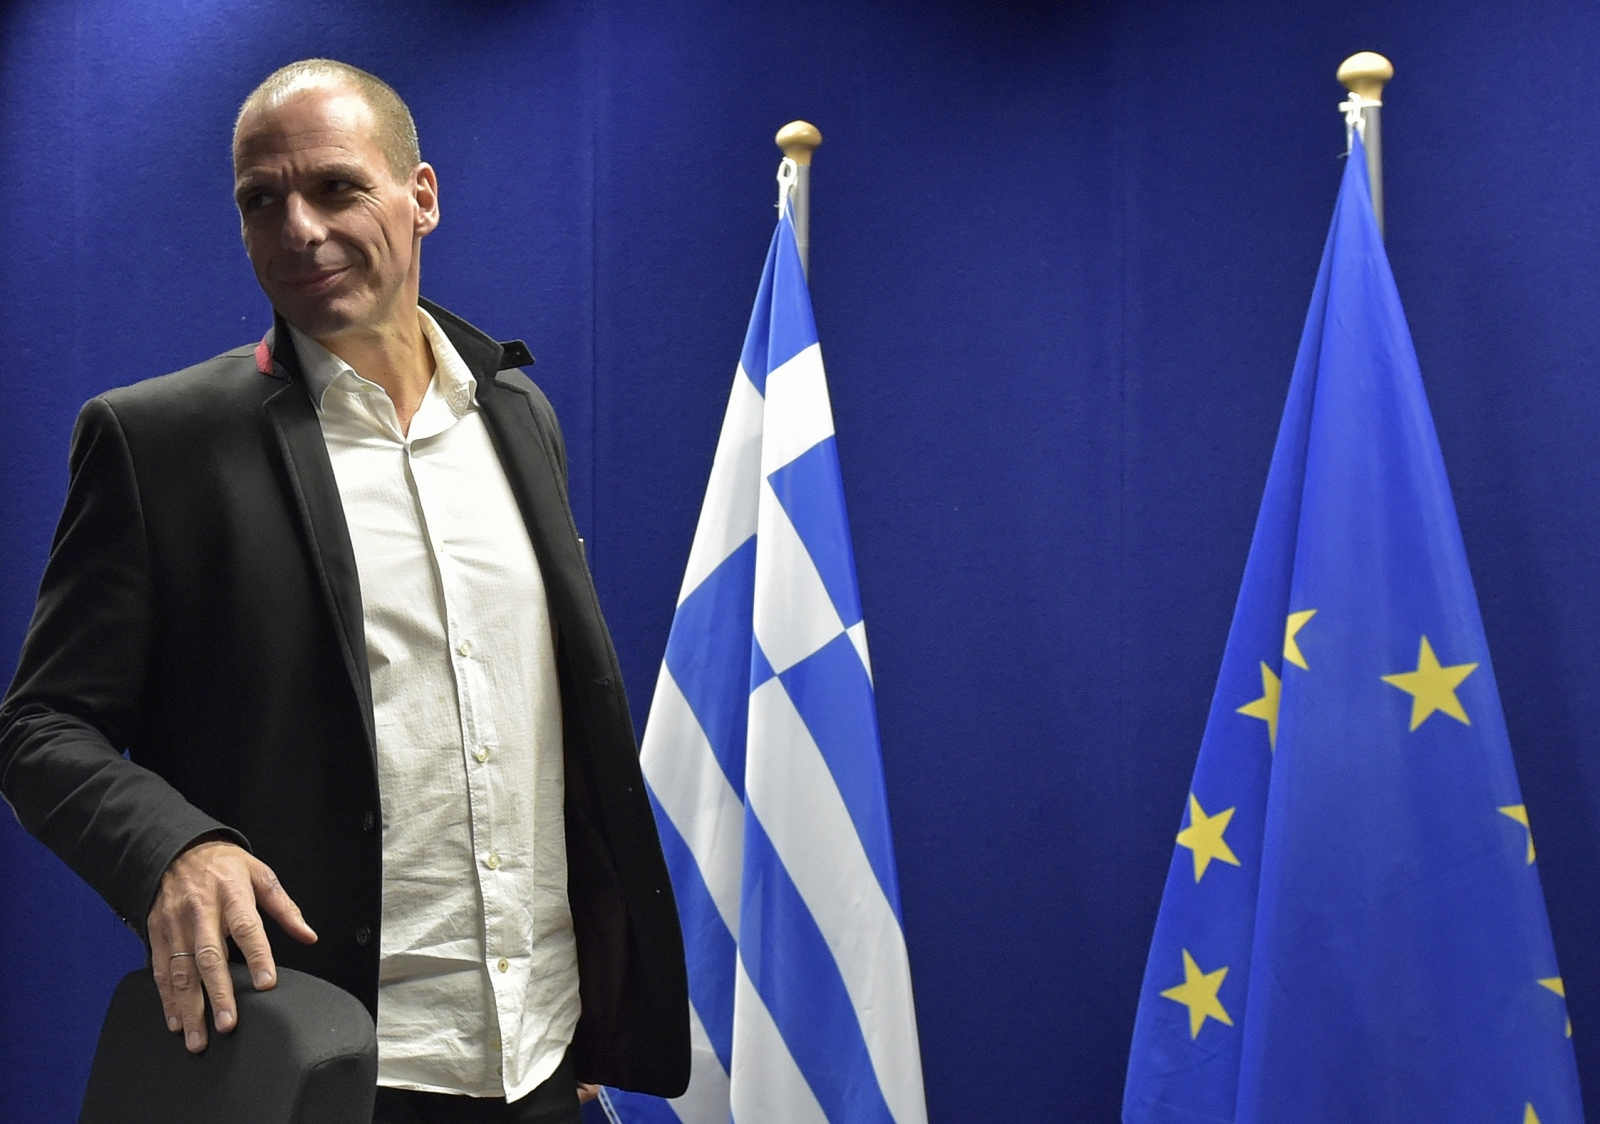 EU sets Greece deadline extension reforms